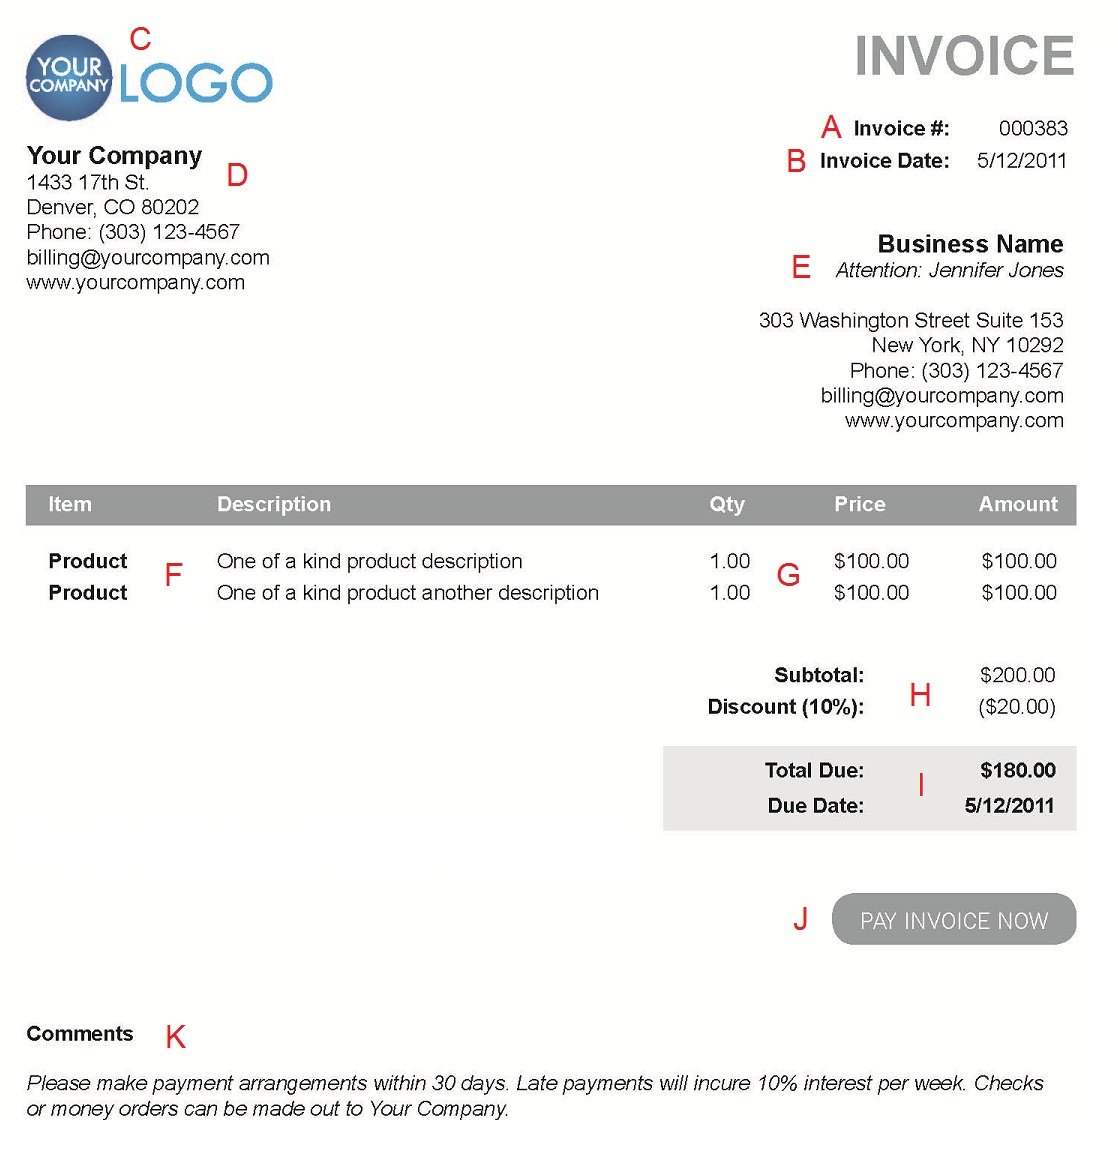 Atvingus  Picturesque The  Different Sections Of An Electronic Payment Invoice With Lovable A  With Nice Calculator With Receipt Also Best Buy Gift Receipt In Addition How To Send Certified Mail Return Receipt Requested And Receipt For Car Sale As Well As Receipt Copy Additionally Bluetooth Receipt Printer Ipad From Paysimplecom With Atvingus  Lovable The  Different Sections Of An Electronic Payment Invoice With Nice A  And Picturesque Calculator With Receipt Also Best Buy Gift Receipt In Addition How To Send Certified Mail Return Receipt Requested From Paysimplecom